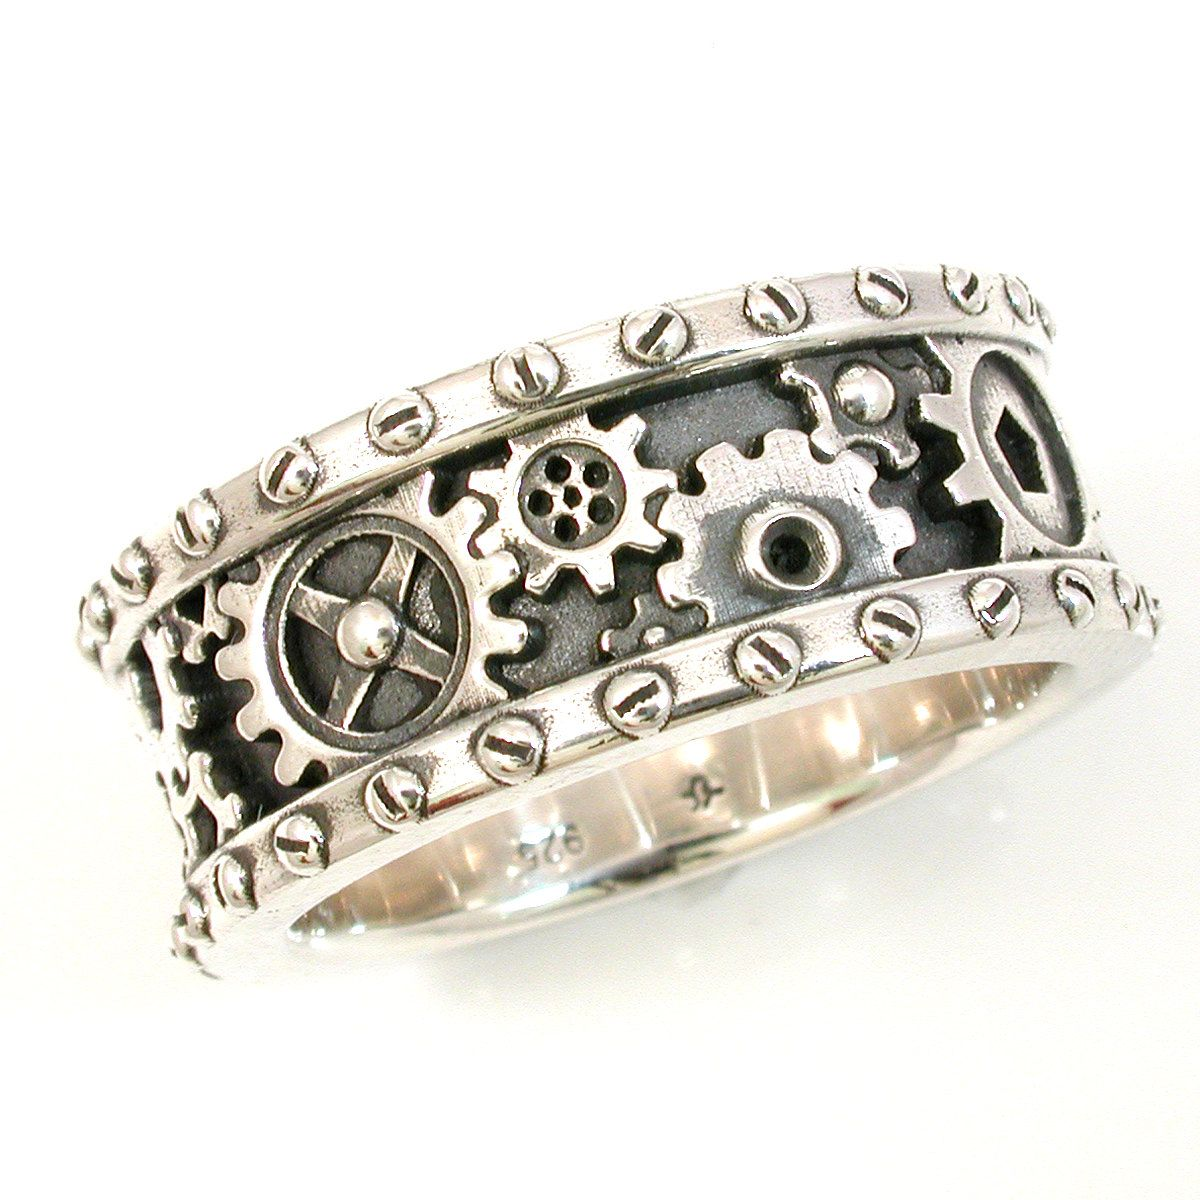 steampunk mens silver ring gears and rivets industrial steam punk handmade gear ring - Steampunk Wedding Rings